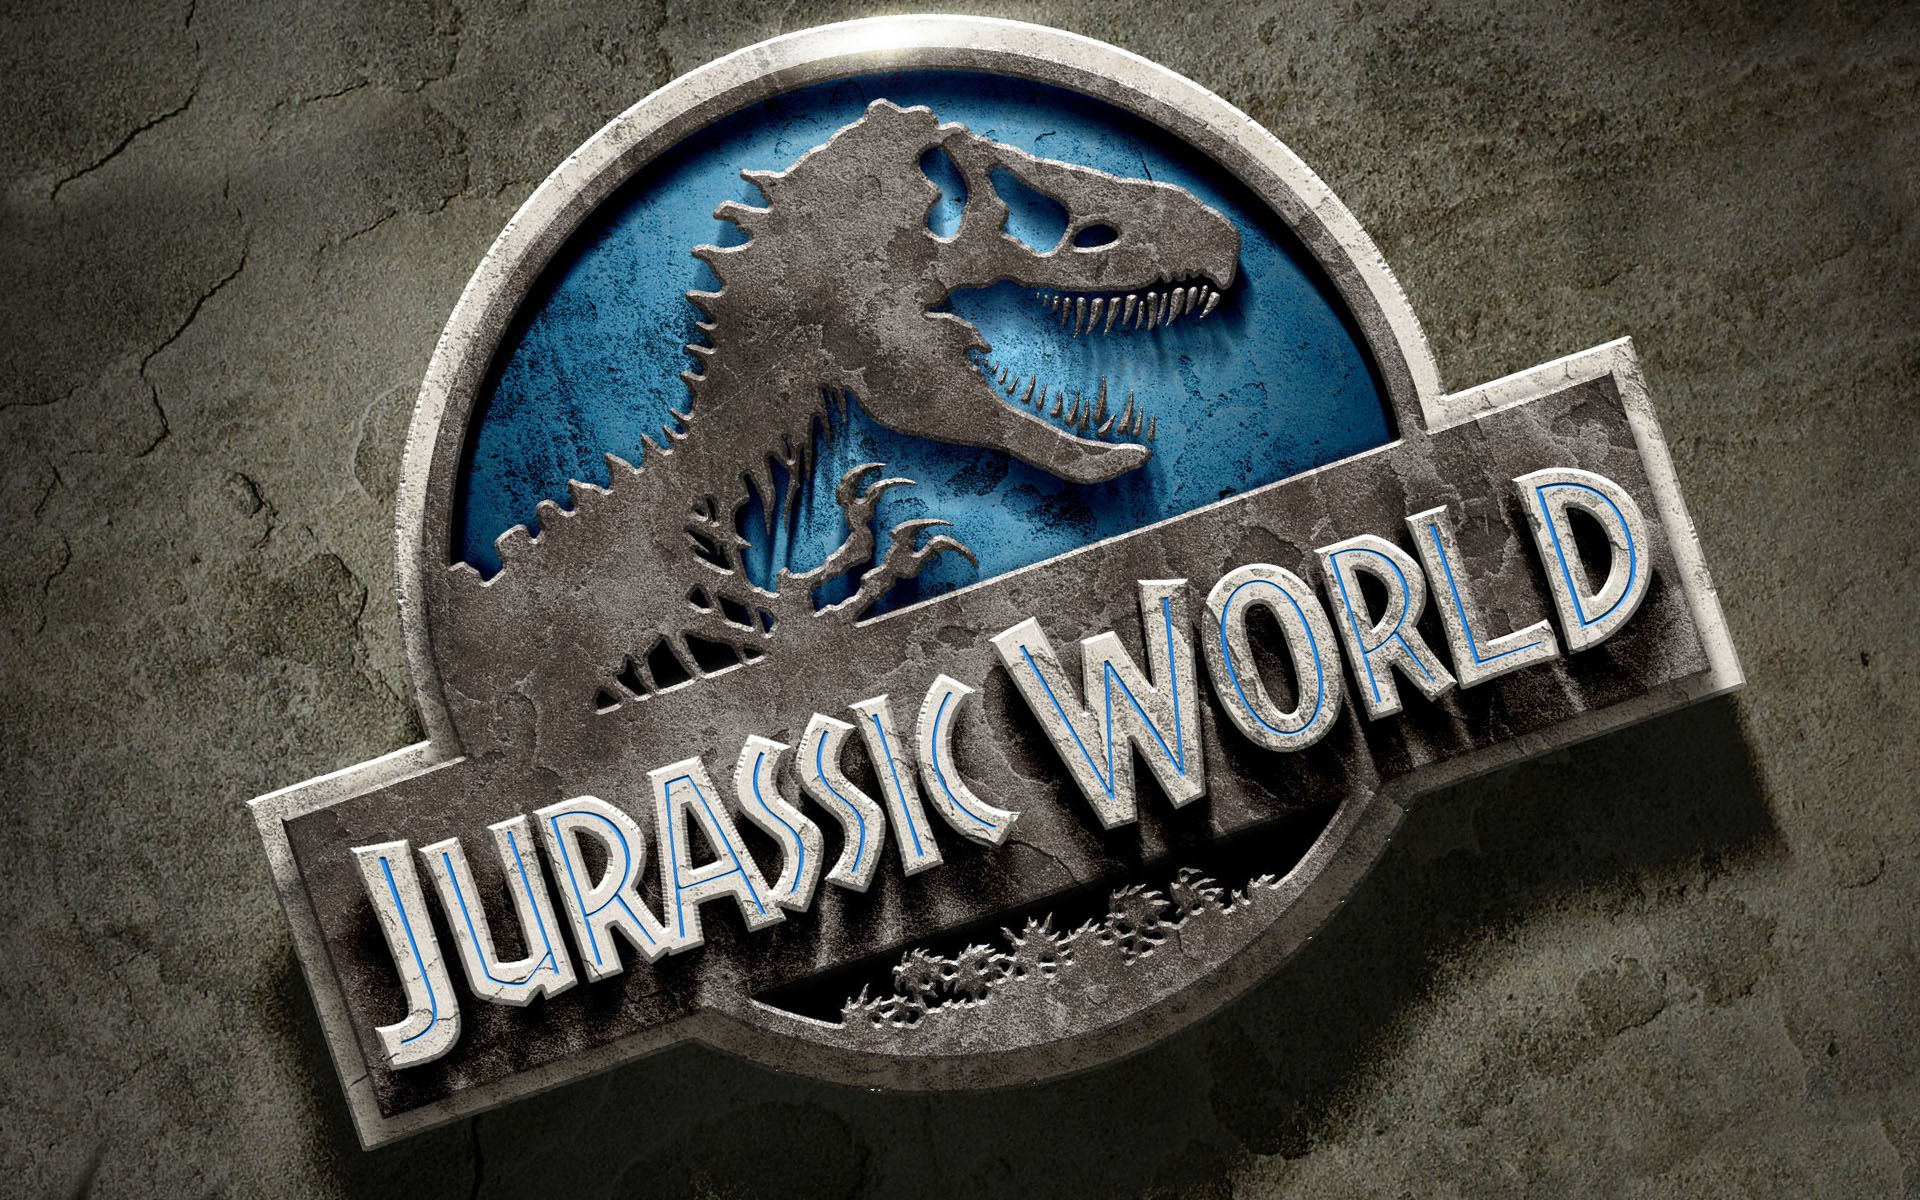 Jackpot City Casino Is Giving $1600 Free To Play Jurassic World